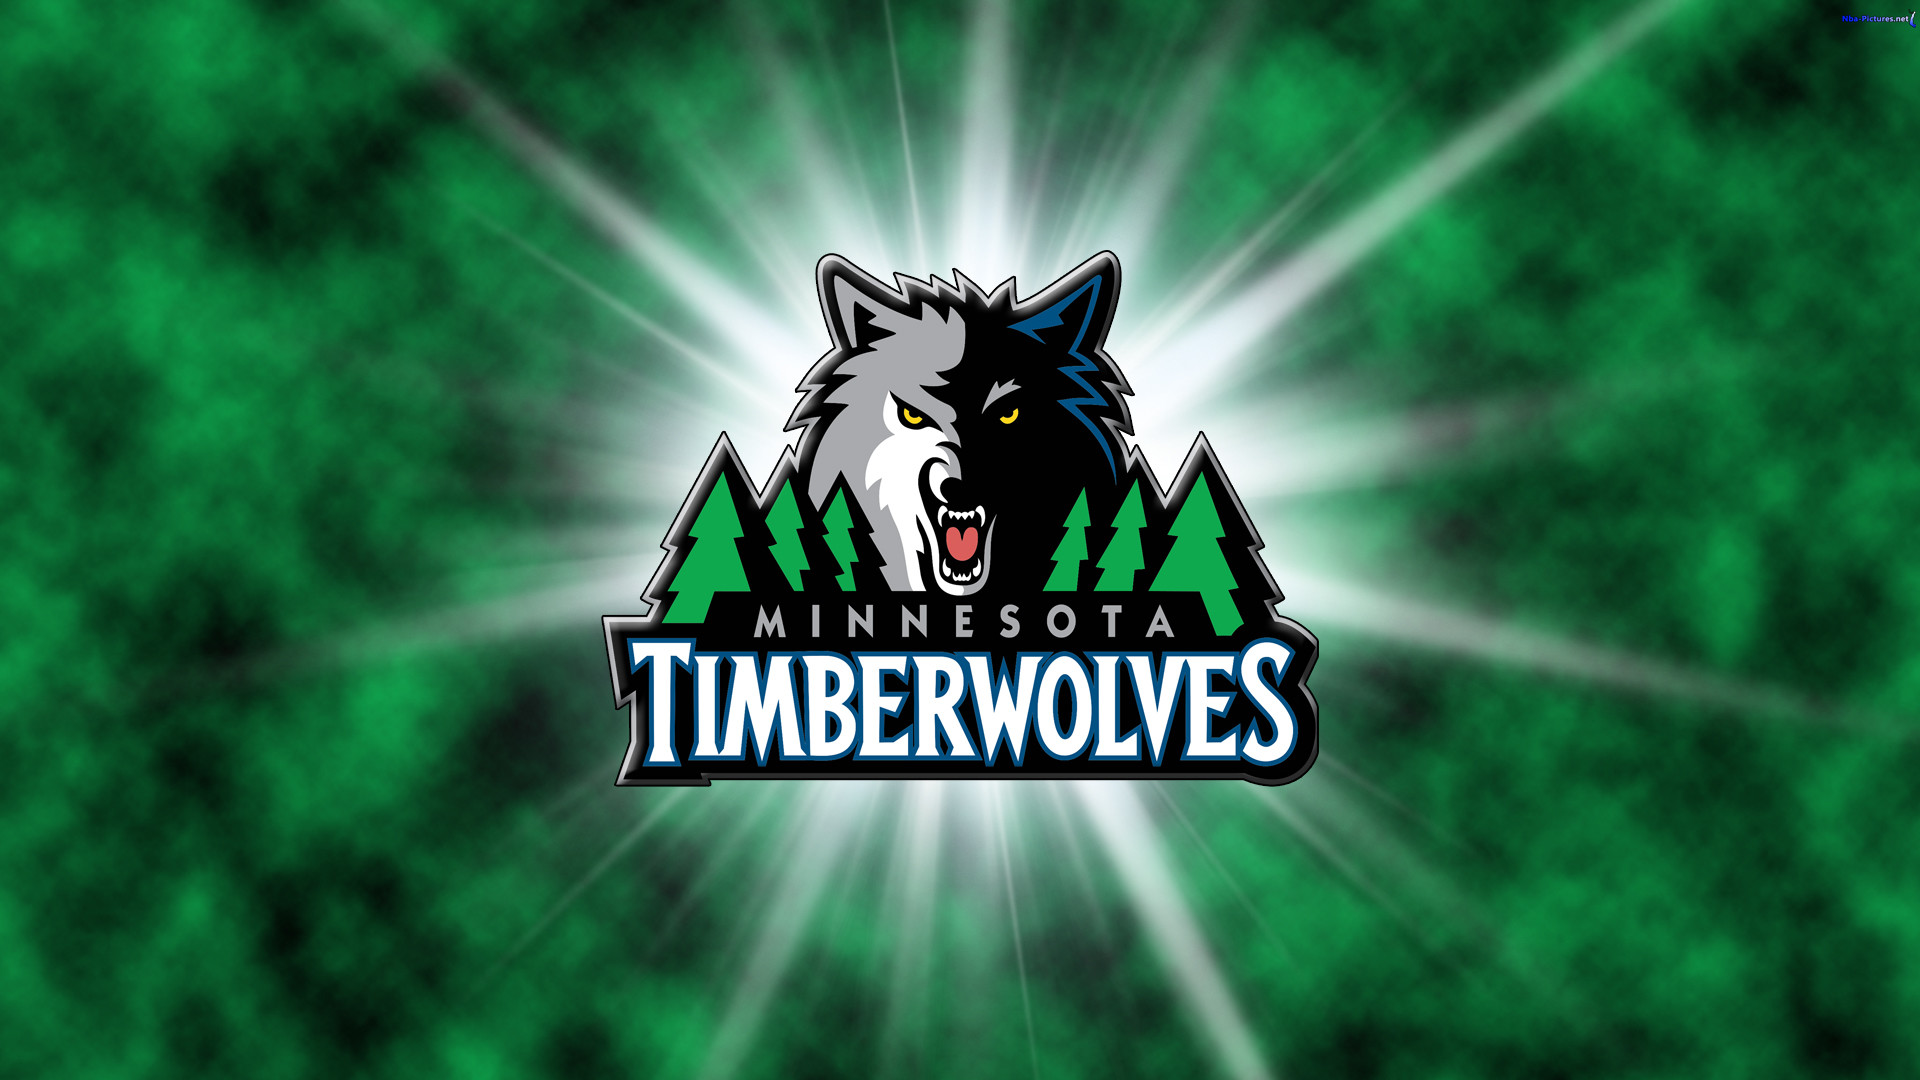 1920x1080 MINNESOTA TIMBERWOLVES nba basketball (26) wallpaper |  | 226591 |  WallpaperUP